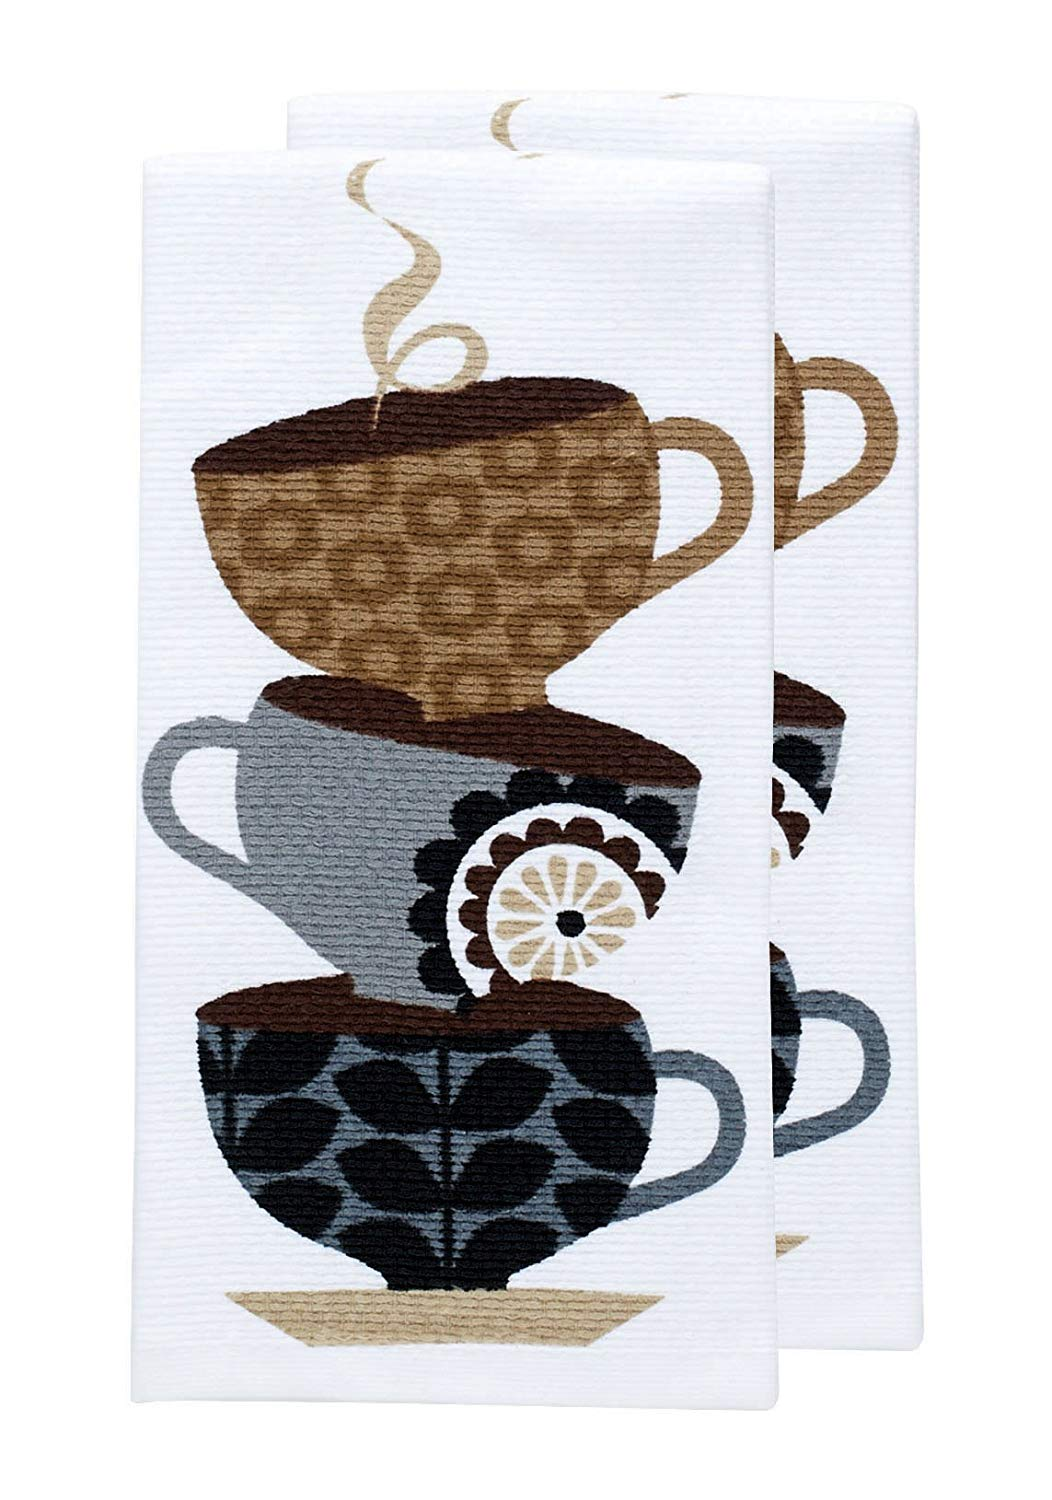 "T-fal Textiles Double Sided Print Woven Cotton Kitchen Dish Towel Set, 2-pack, 16"" x 26"", Coffee Cup Print"